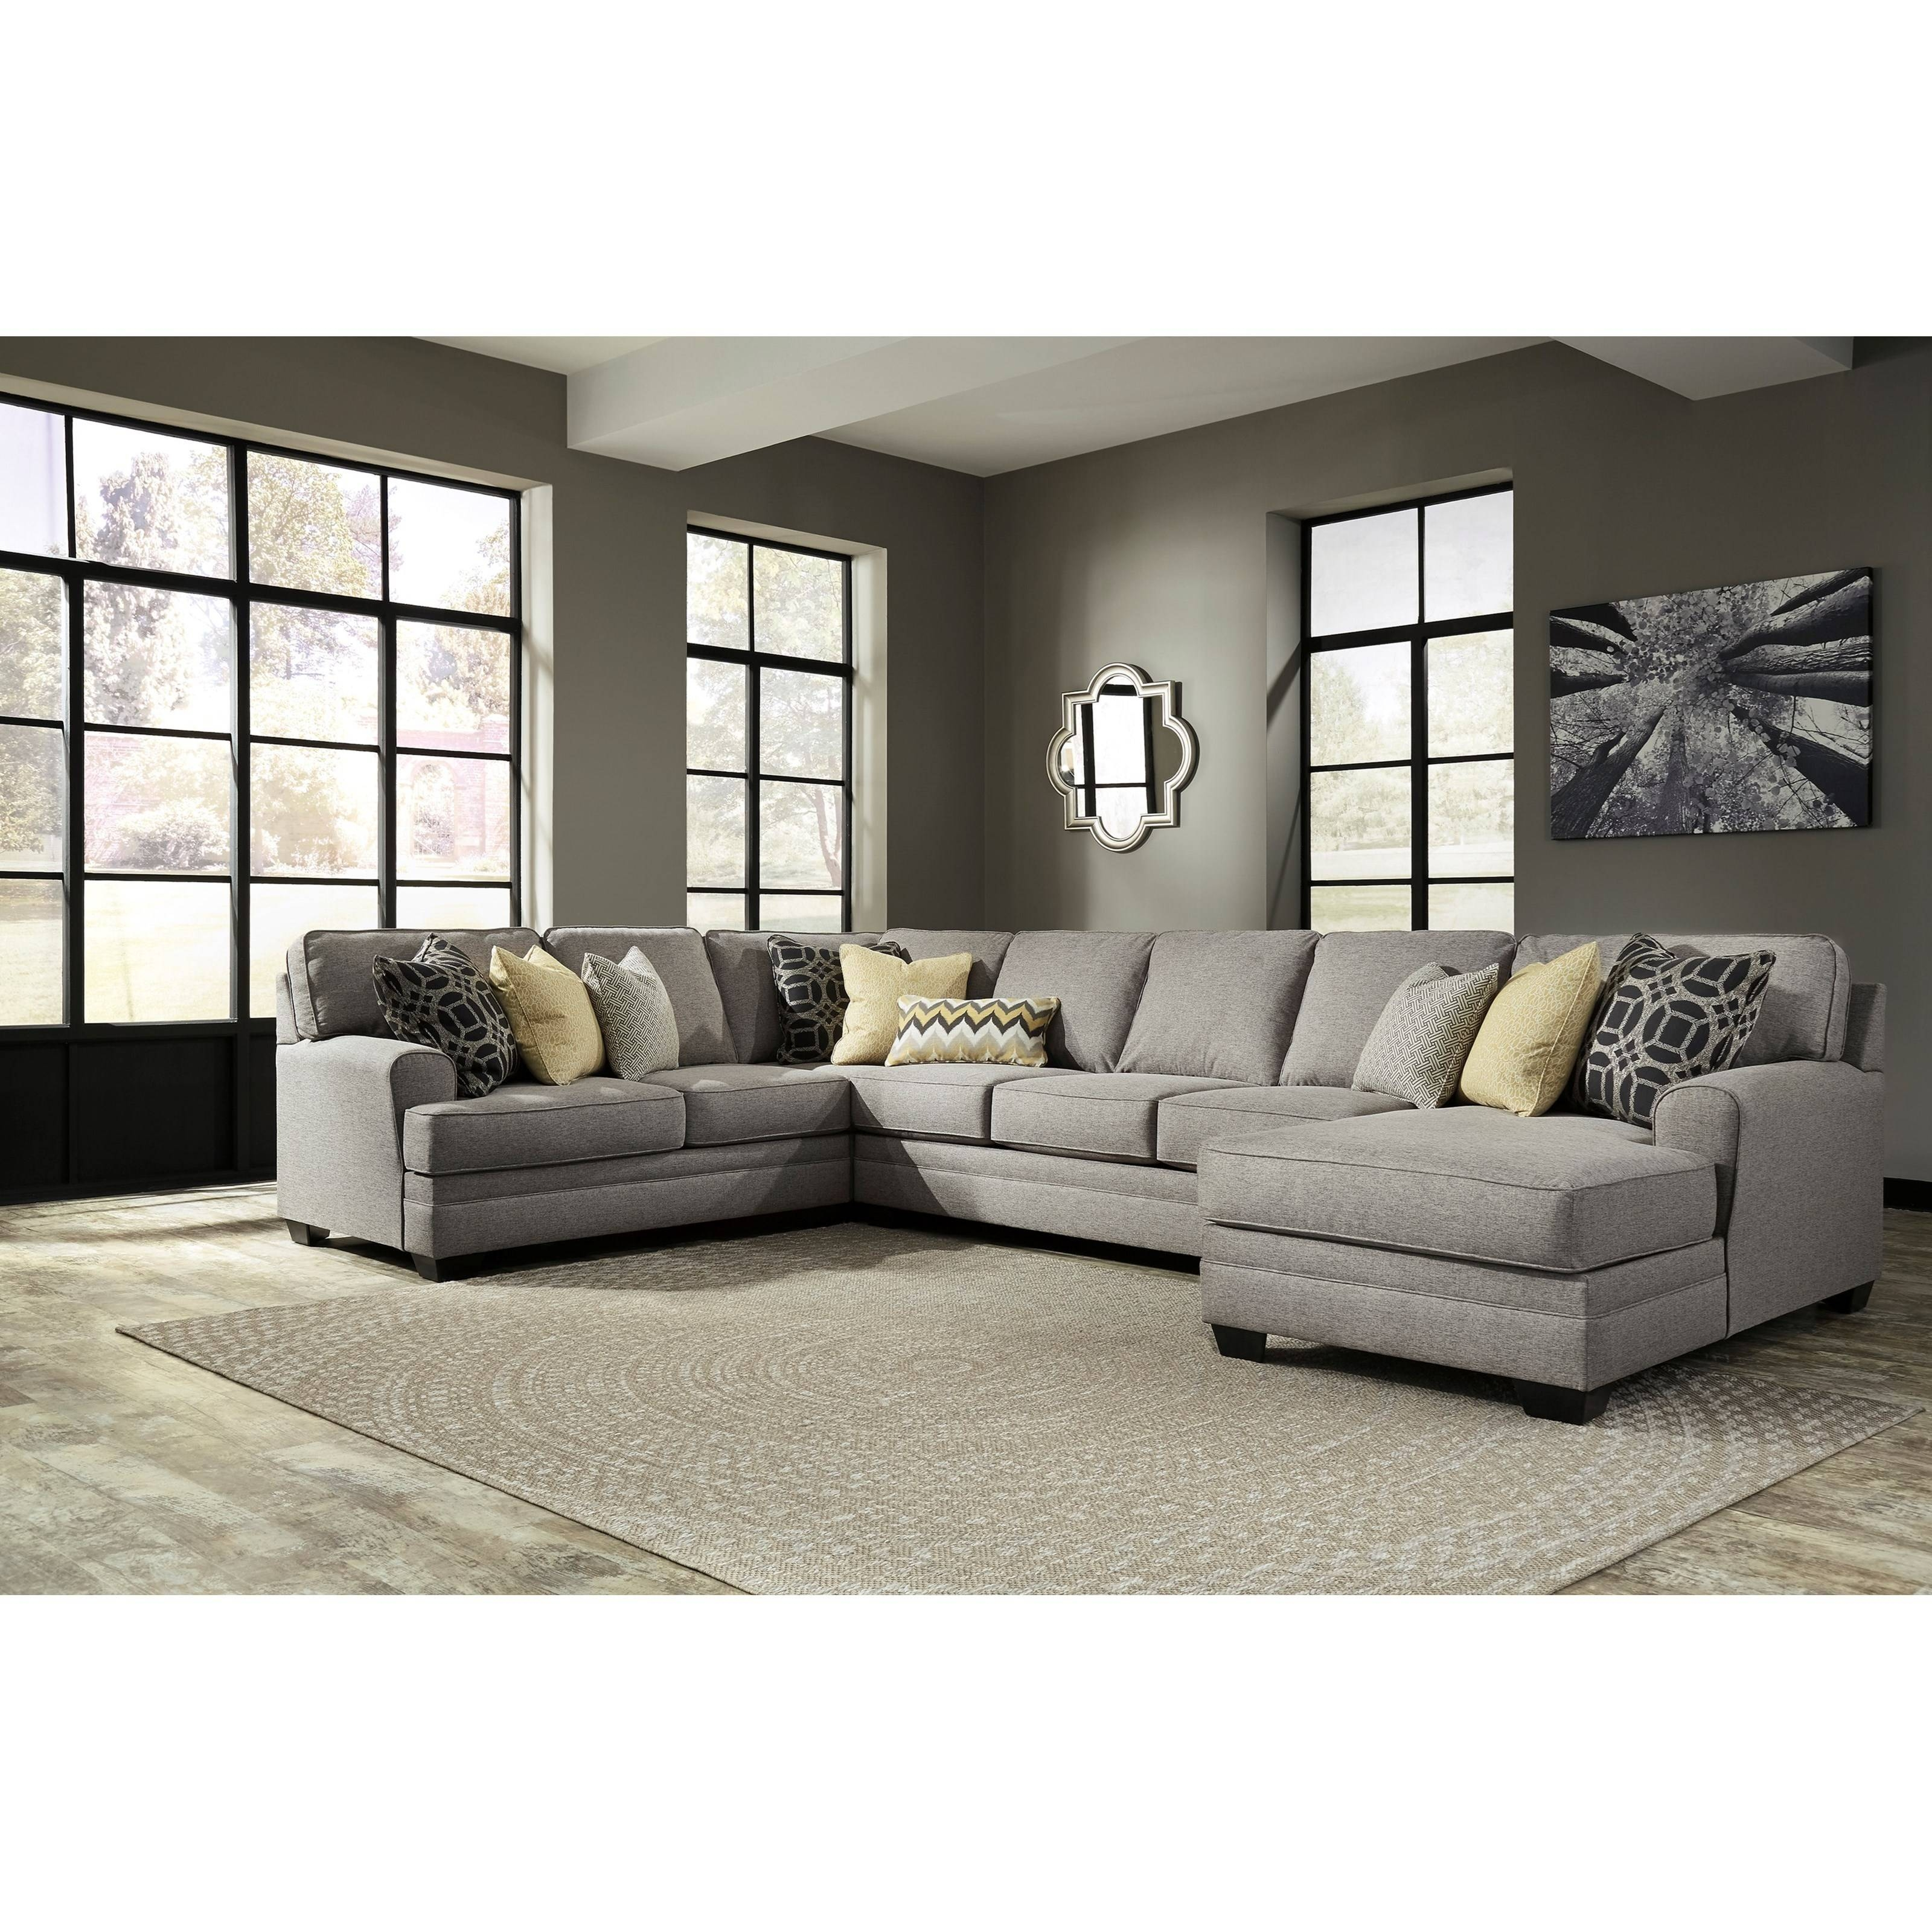 Benchcraft Cresson Contemporary 4-Piece Sectional With Chaise with Armless Sectional Sofa (Image 2 of 30)